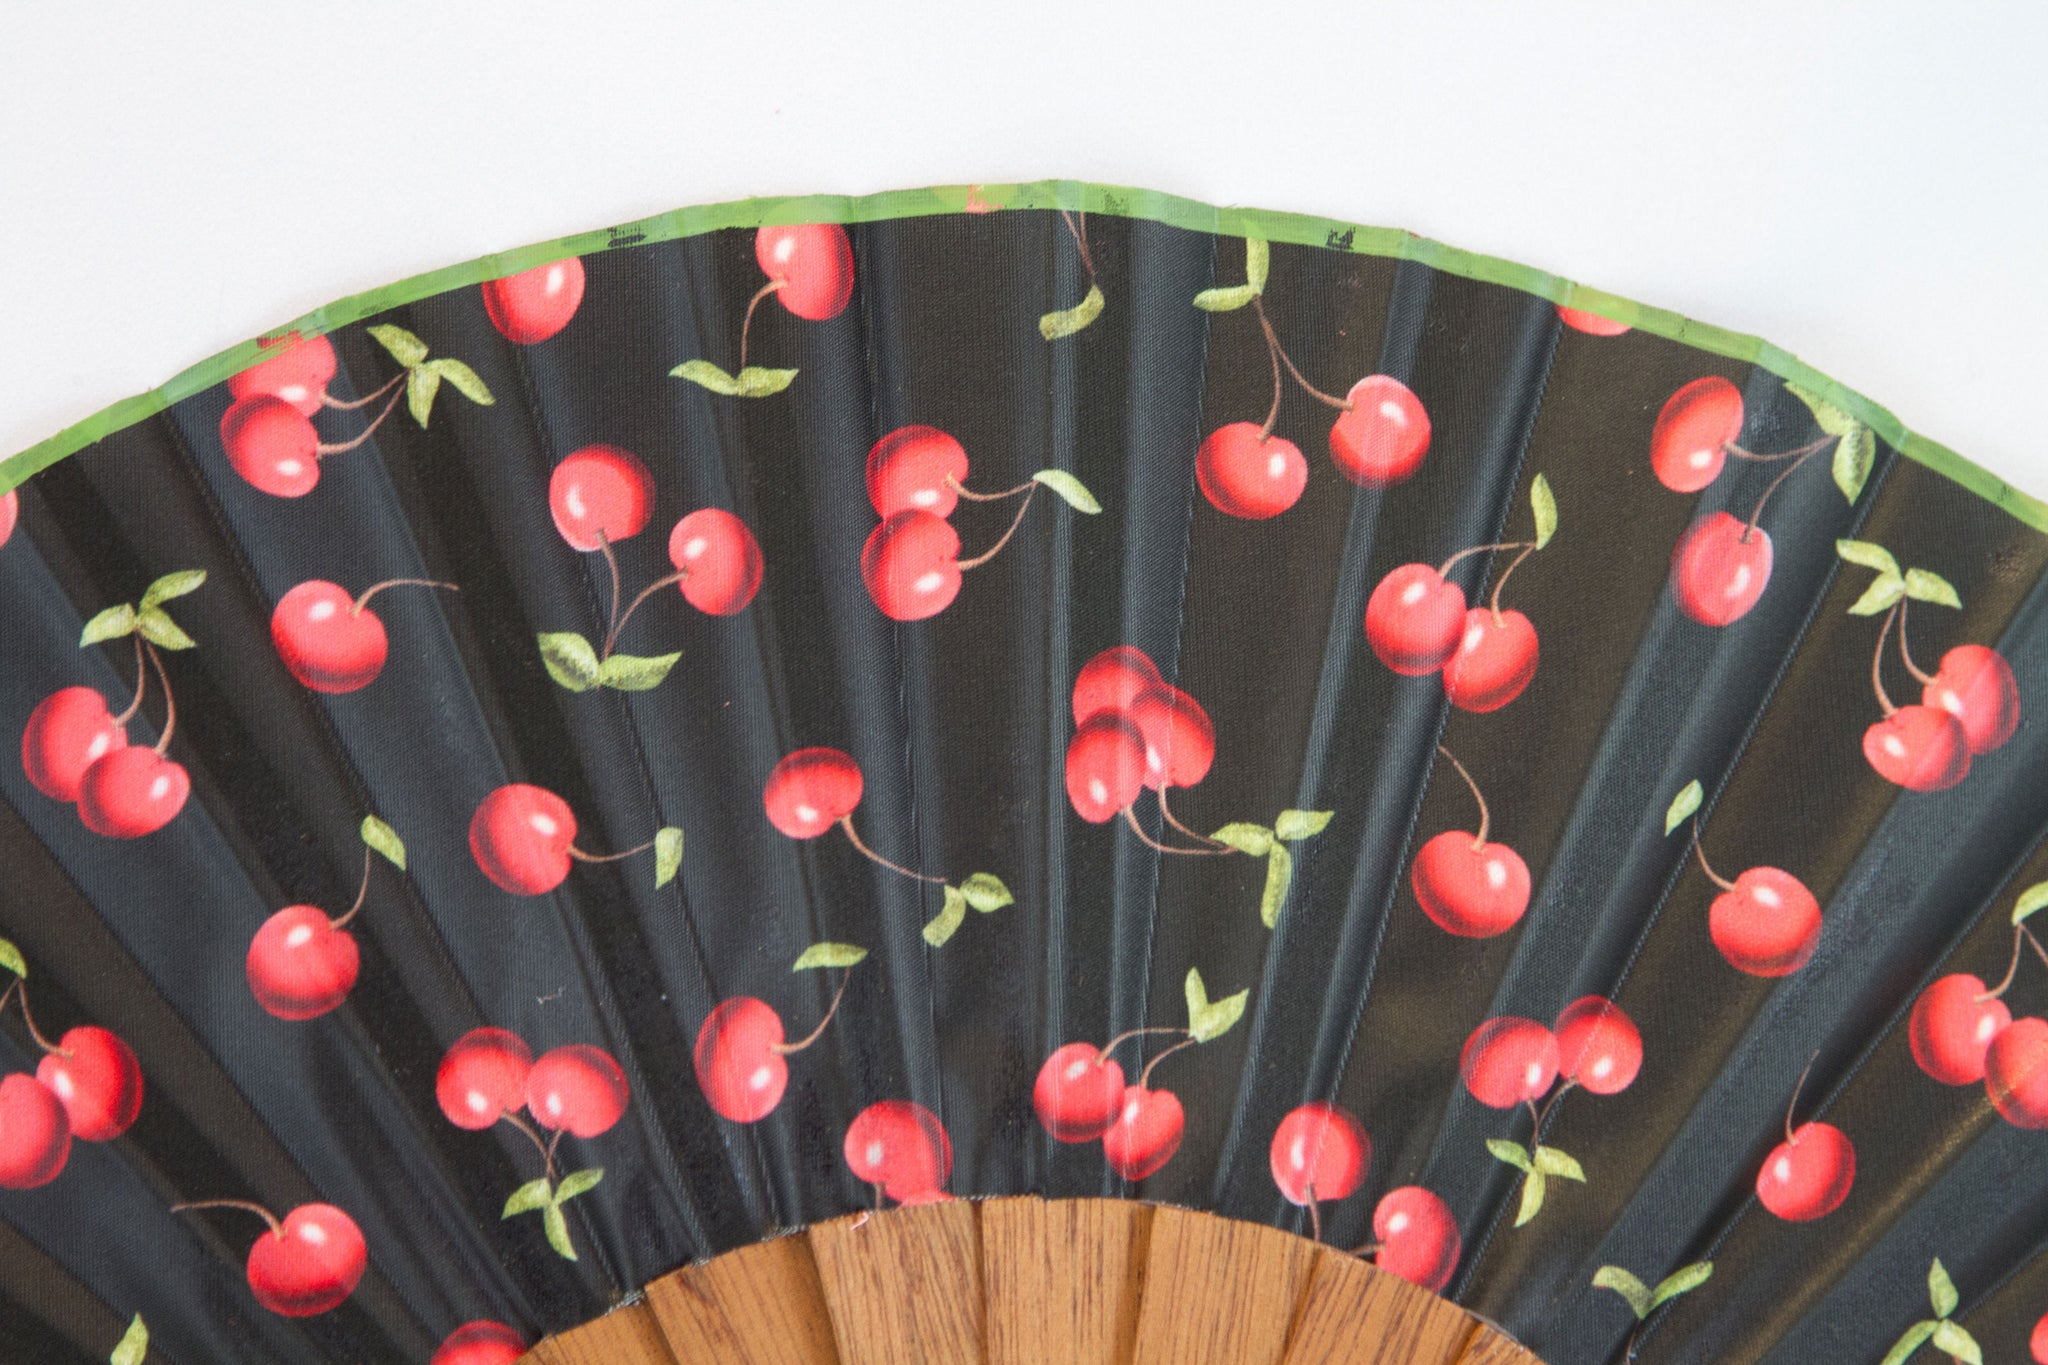 Morello - Striking contemporary cherries design handmade silk hand fan